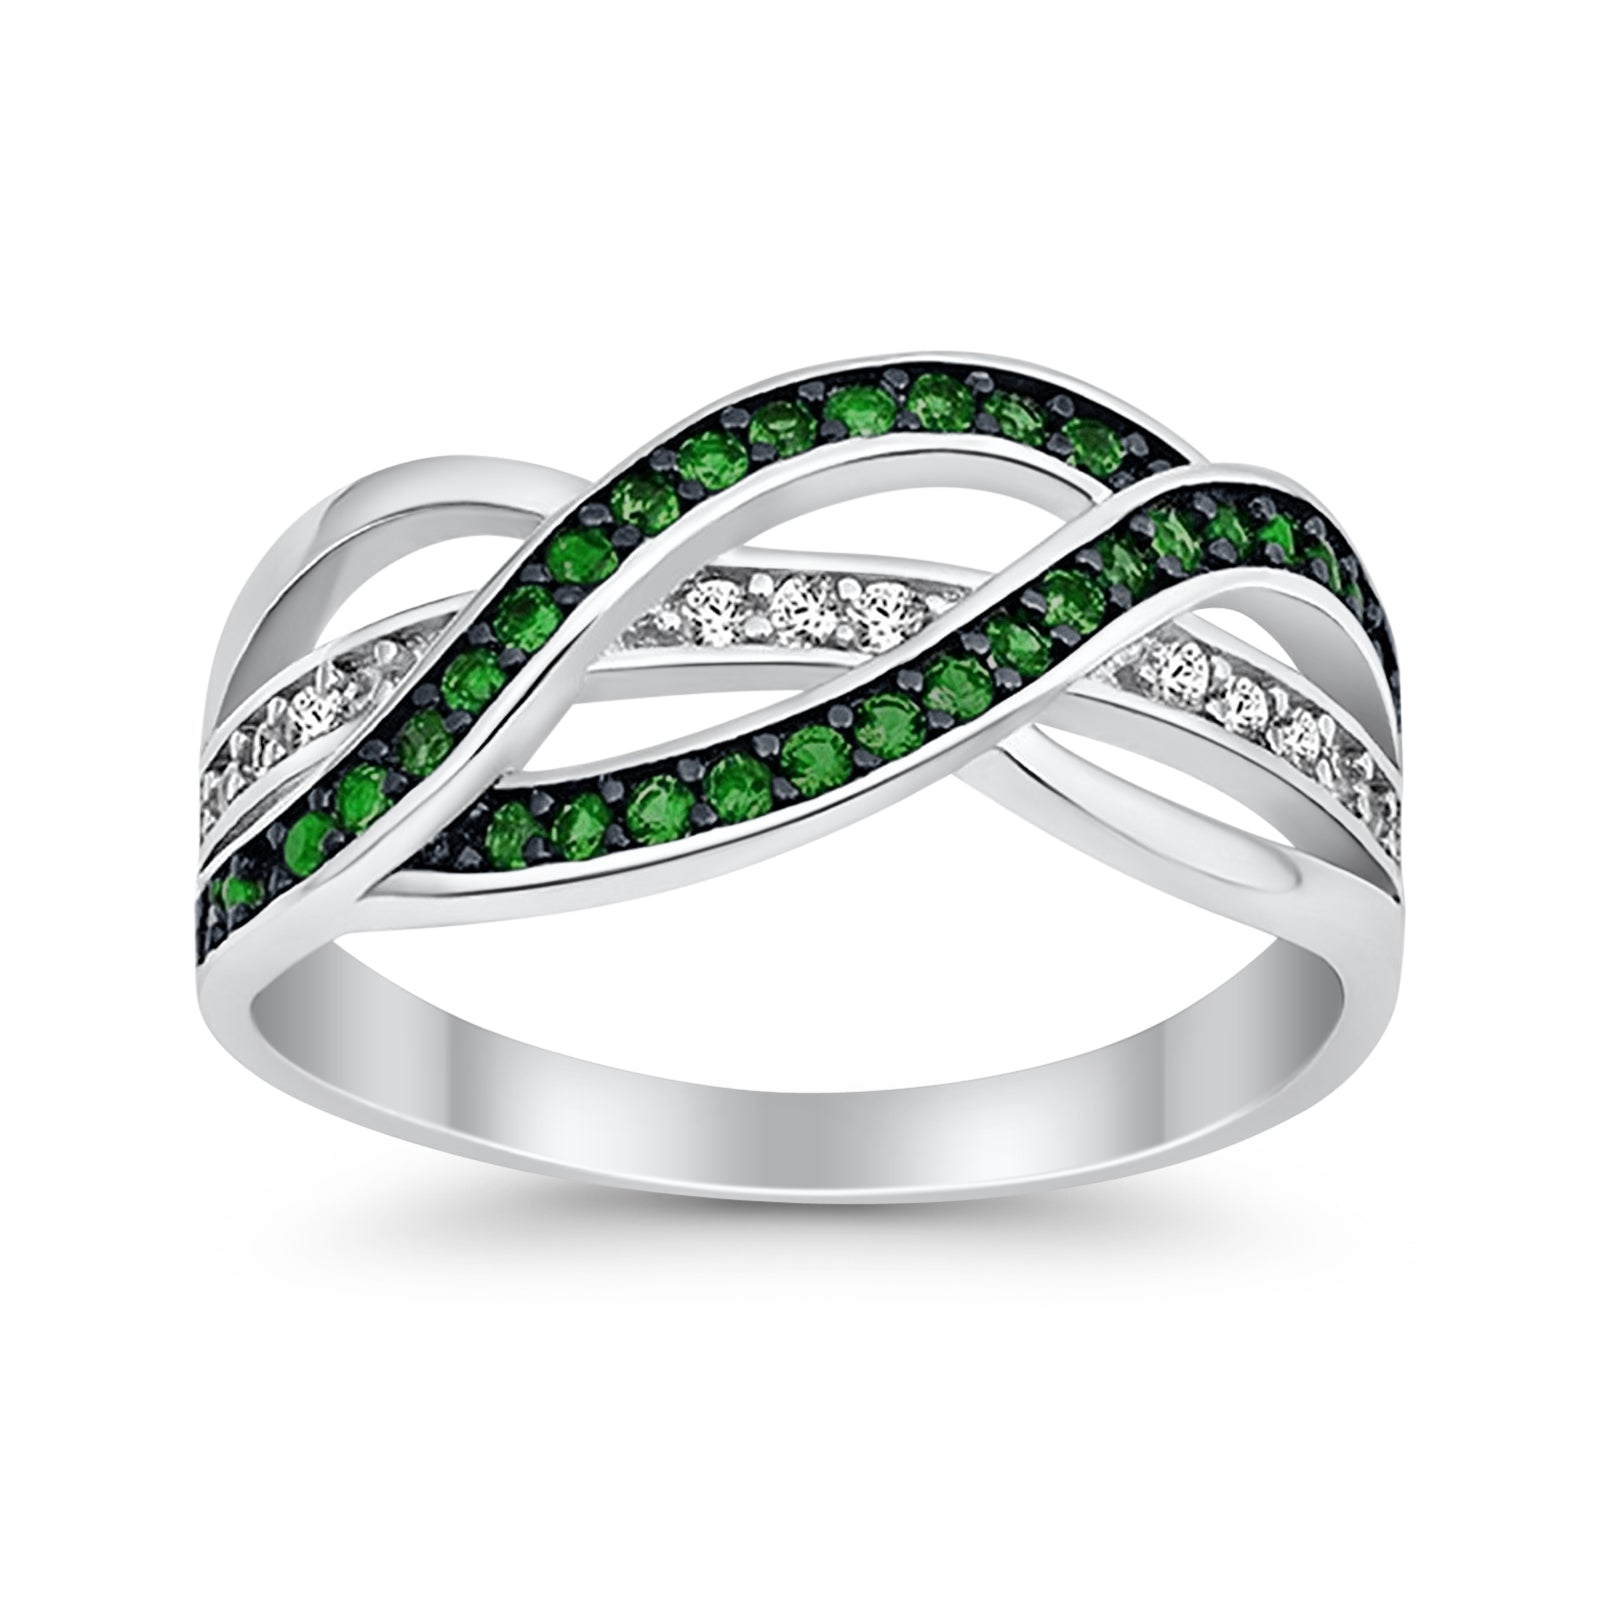 Weave Knot Ring Crisscross Crossover Simulated Green Emerald Round CZ 925 Sterling Silver